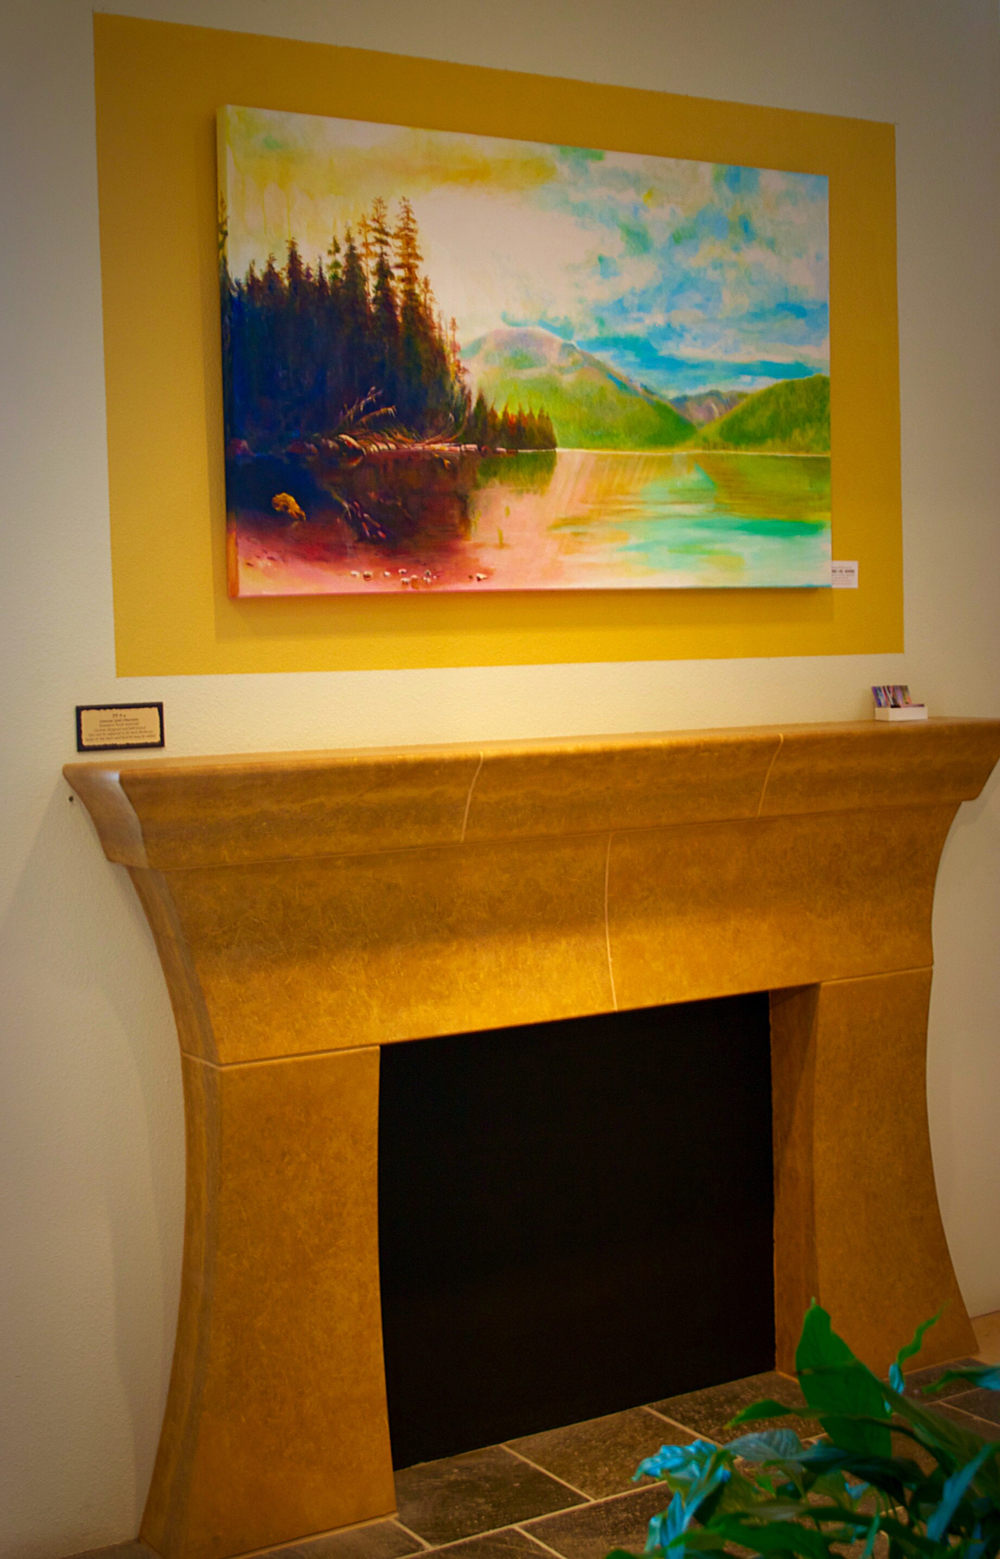 Saranac Lake, Morning study by George Porter above a Custom Limestone Fireplace